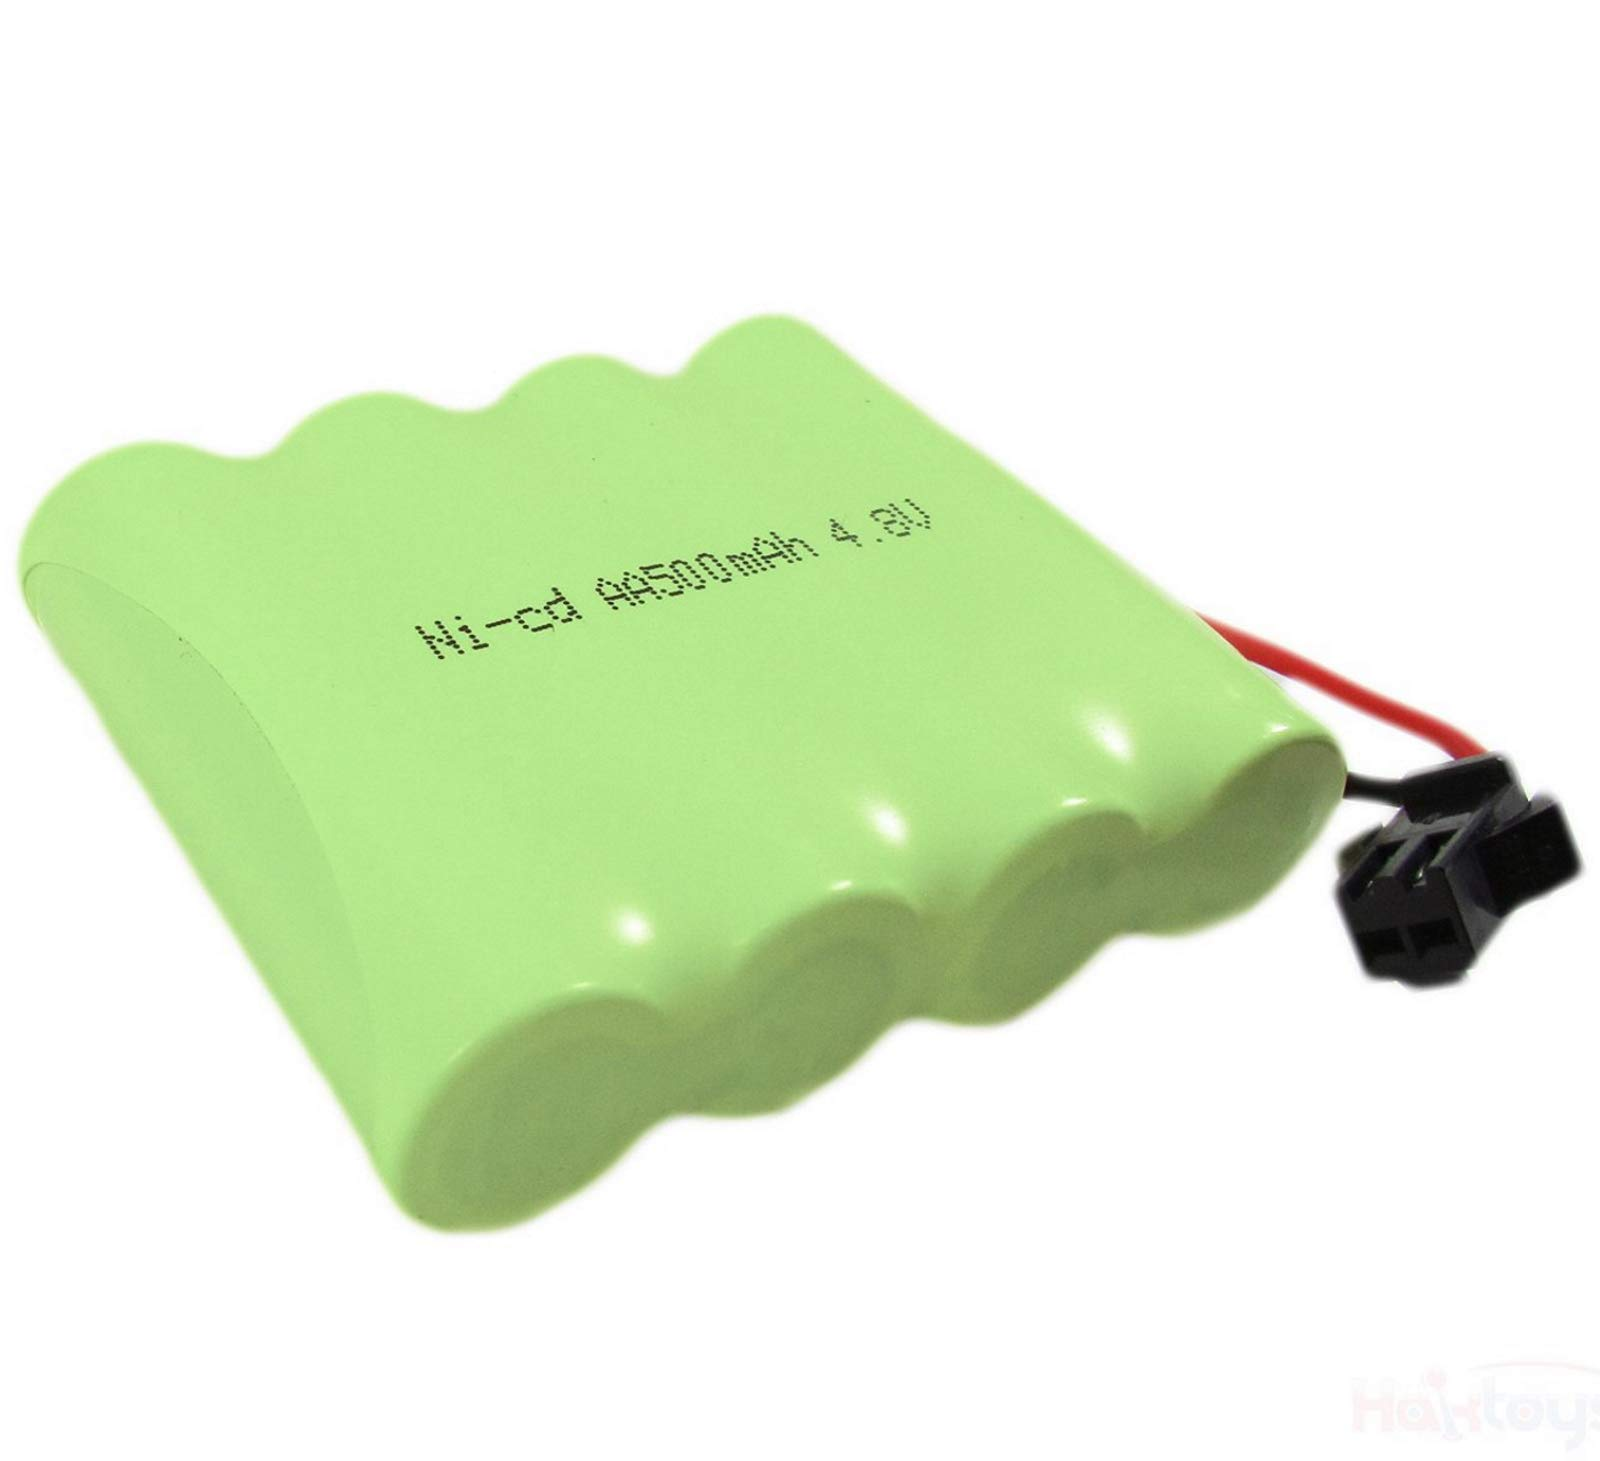 Ni-cd 4.8V 500mAh Replacement Car Battery Part Compatible with Haktoys HAK101 (Not HAK104) RC Stunt Car and Other Compatible RC Hobby Products - Colors May Vary